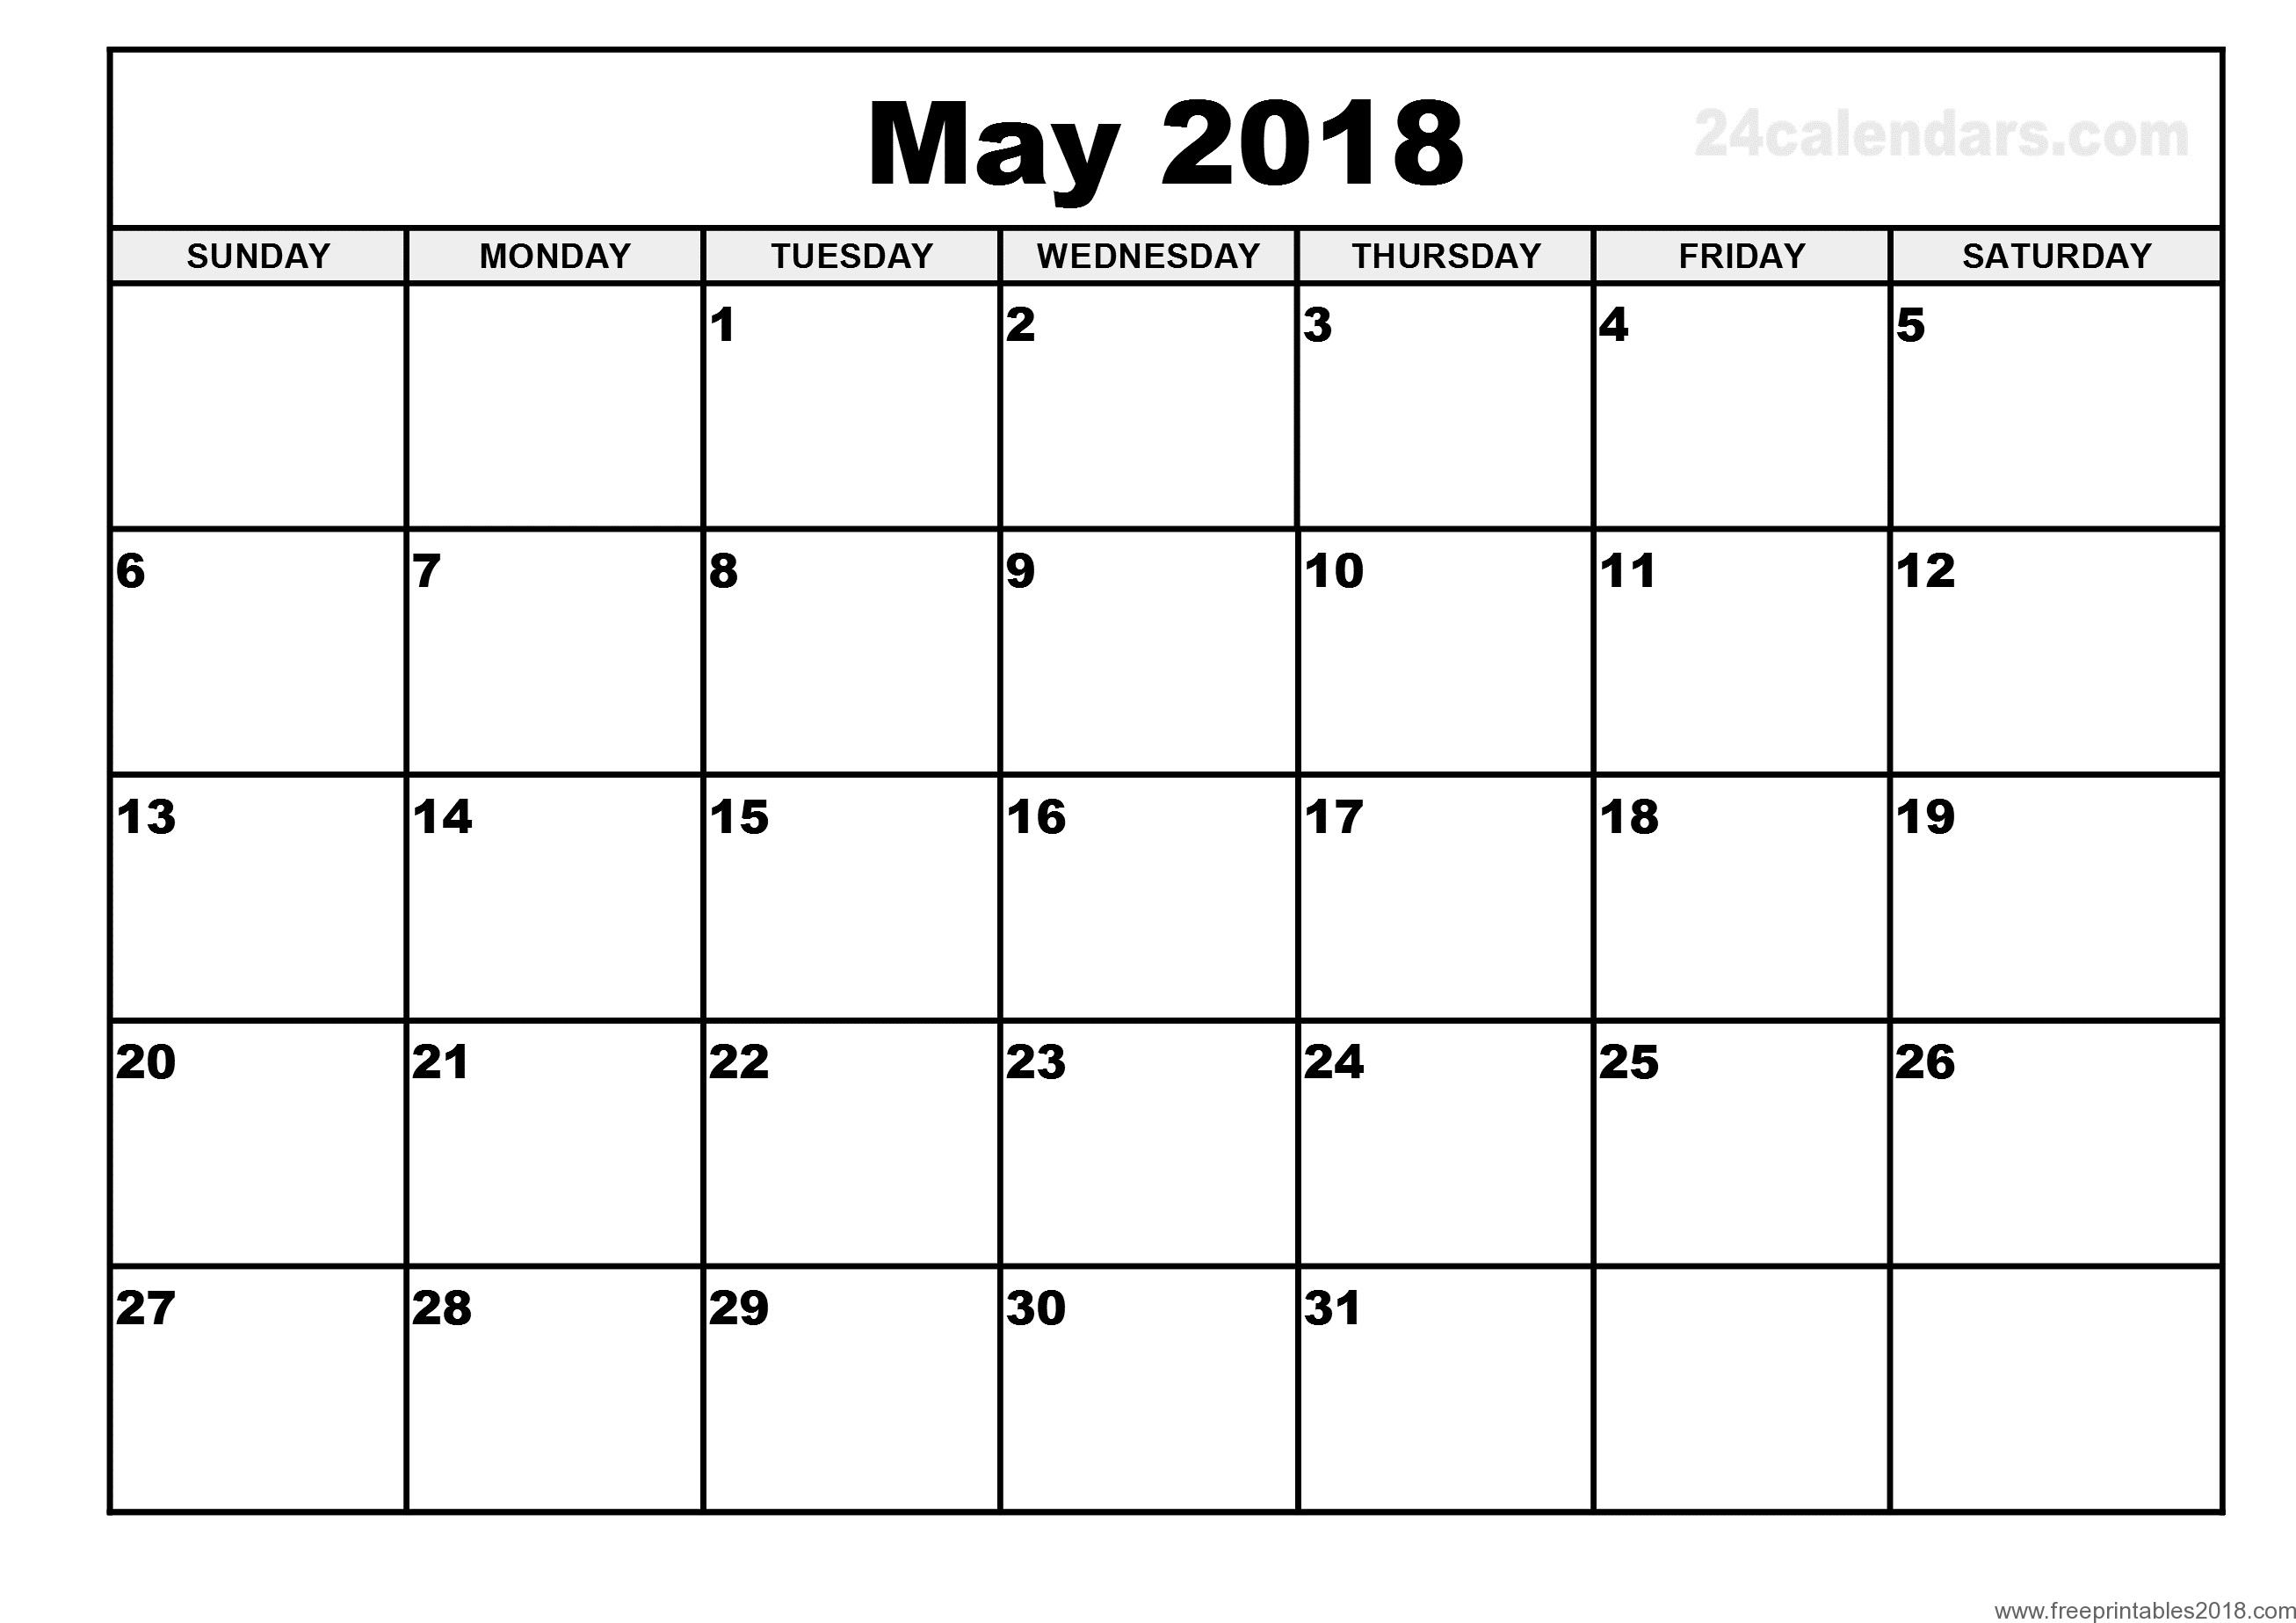 Free Printable Calendar May 2018 | Free Printables 2018